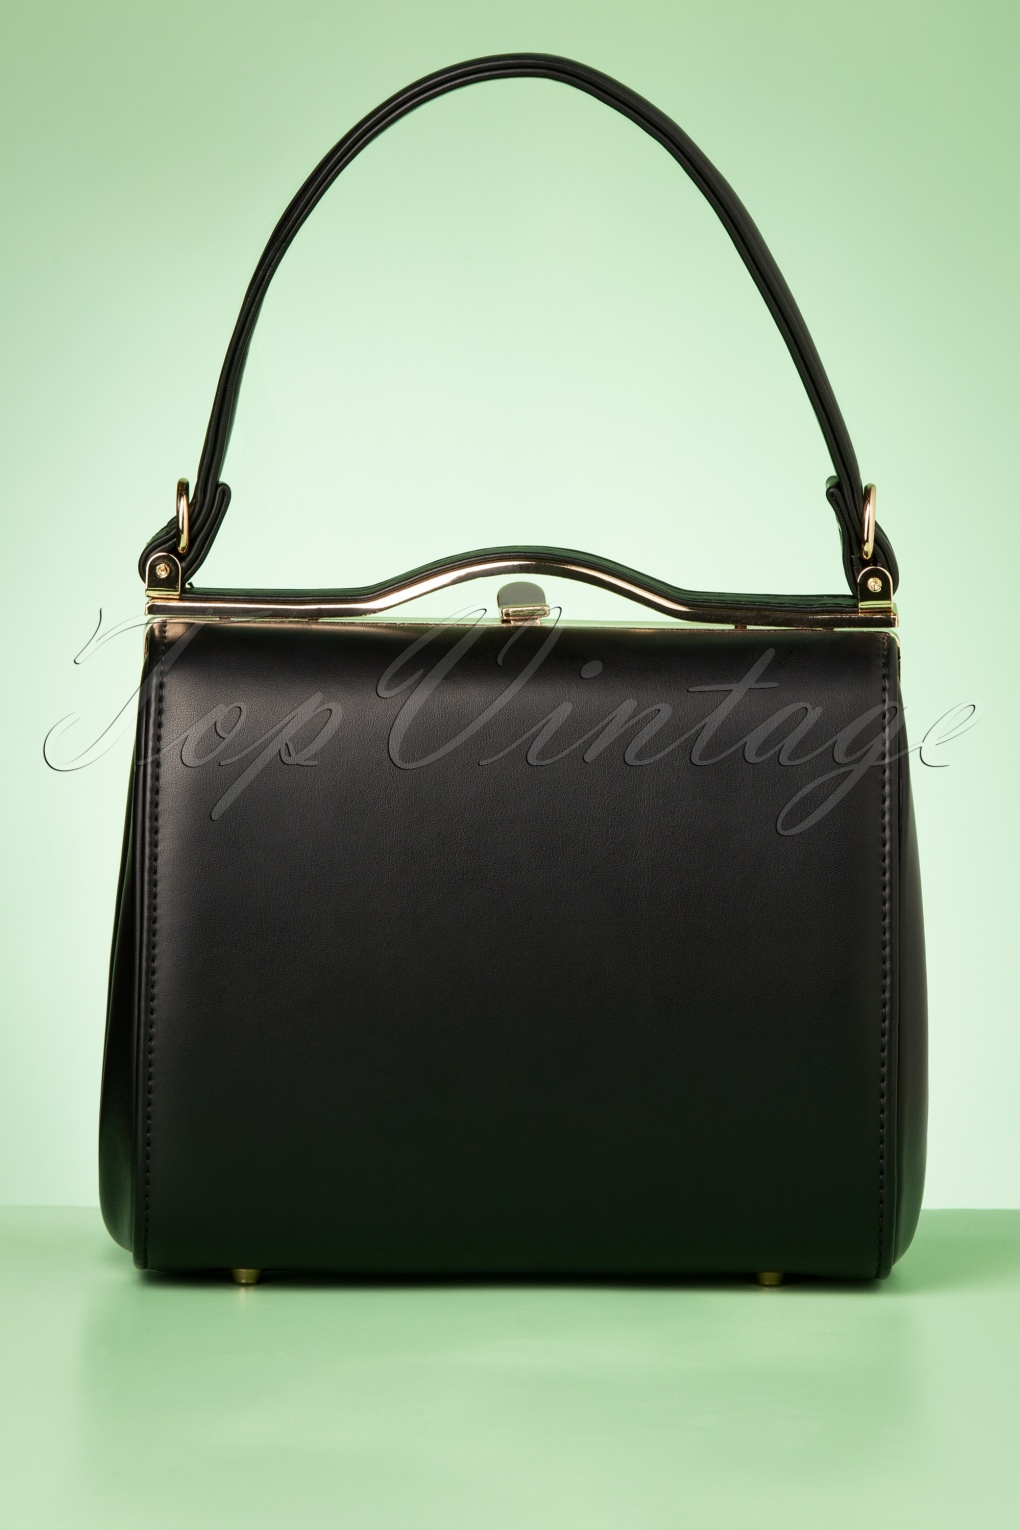 60s Fancy Dress and Quality Clothing 1960s UK 60s Carrie Bag in Black £33.42 AT vintagedancer.com